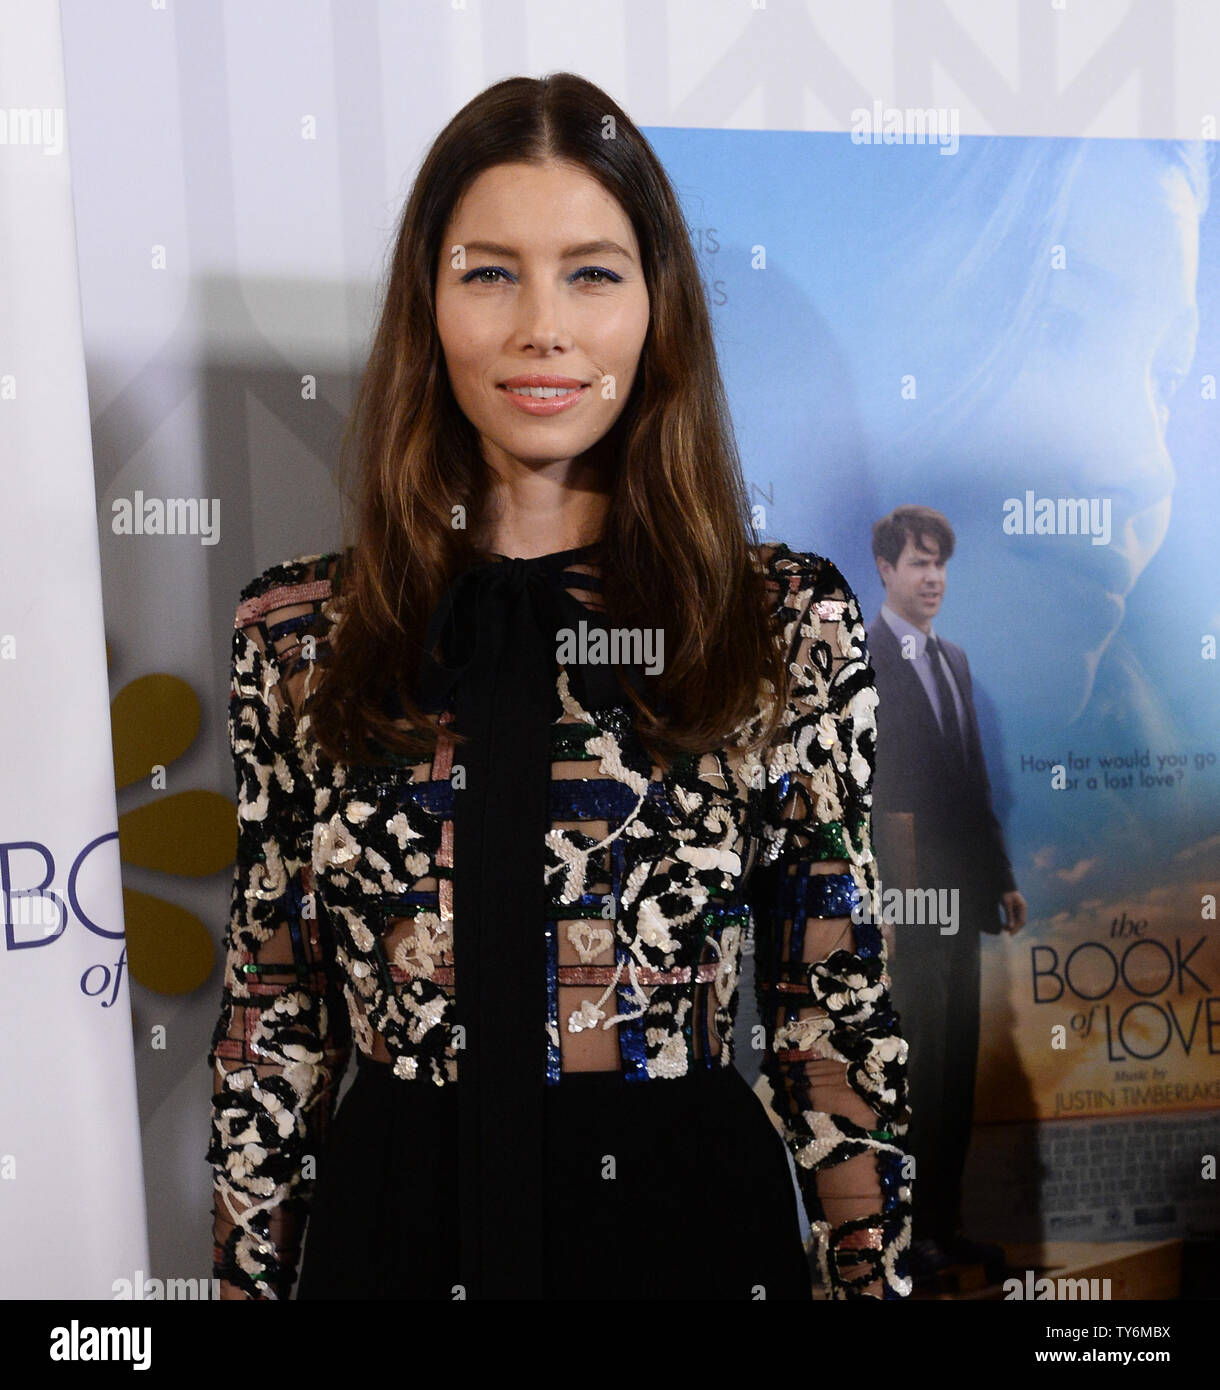 Cast member Jessica Biel attends the premiere of the motion